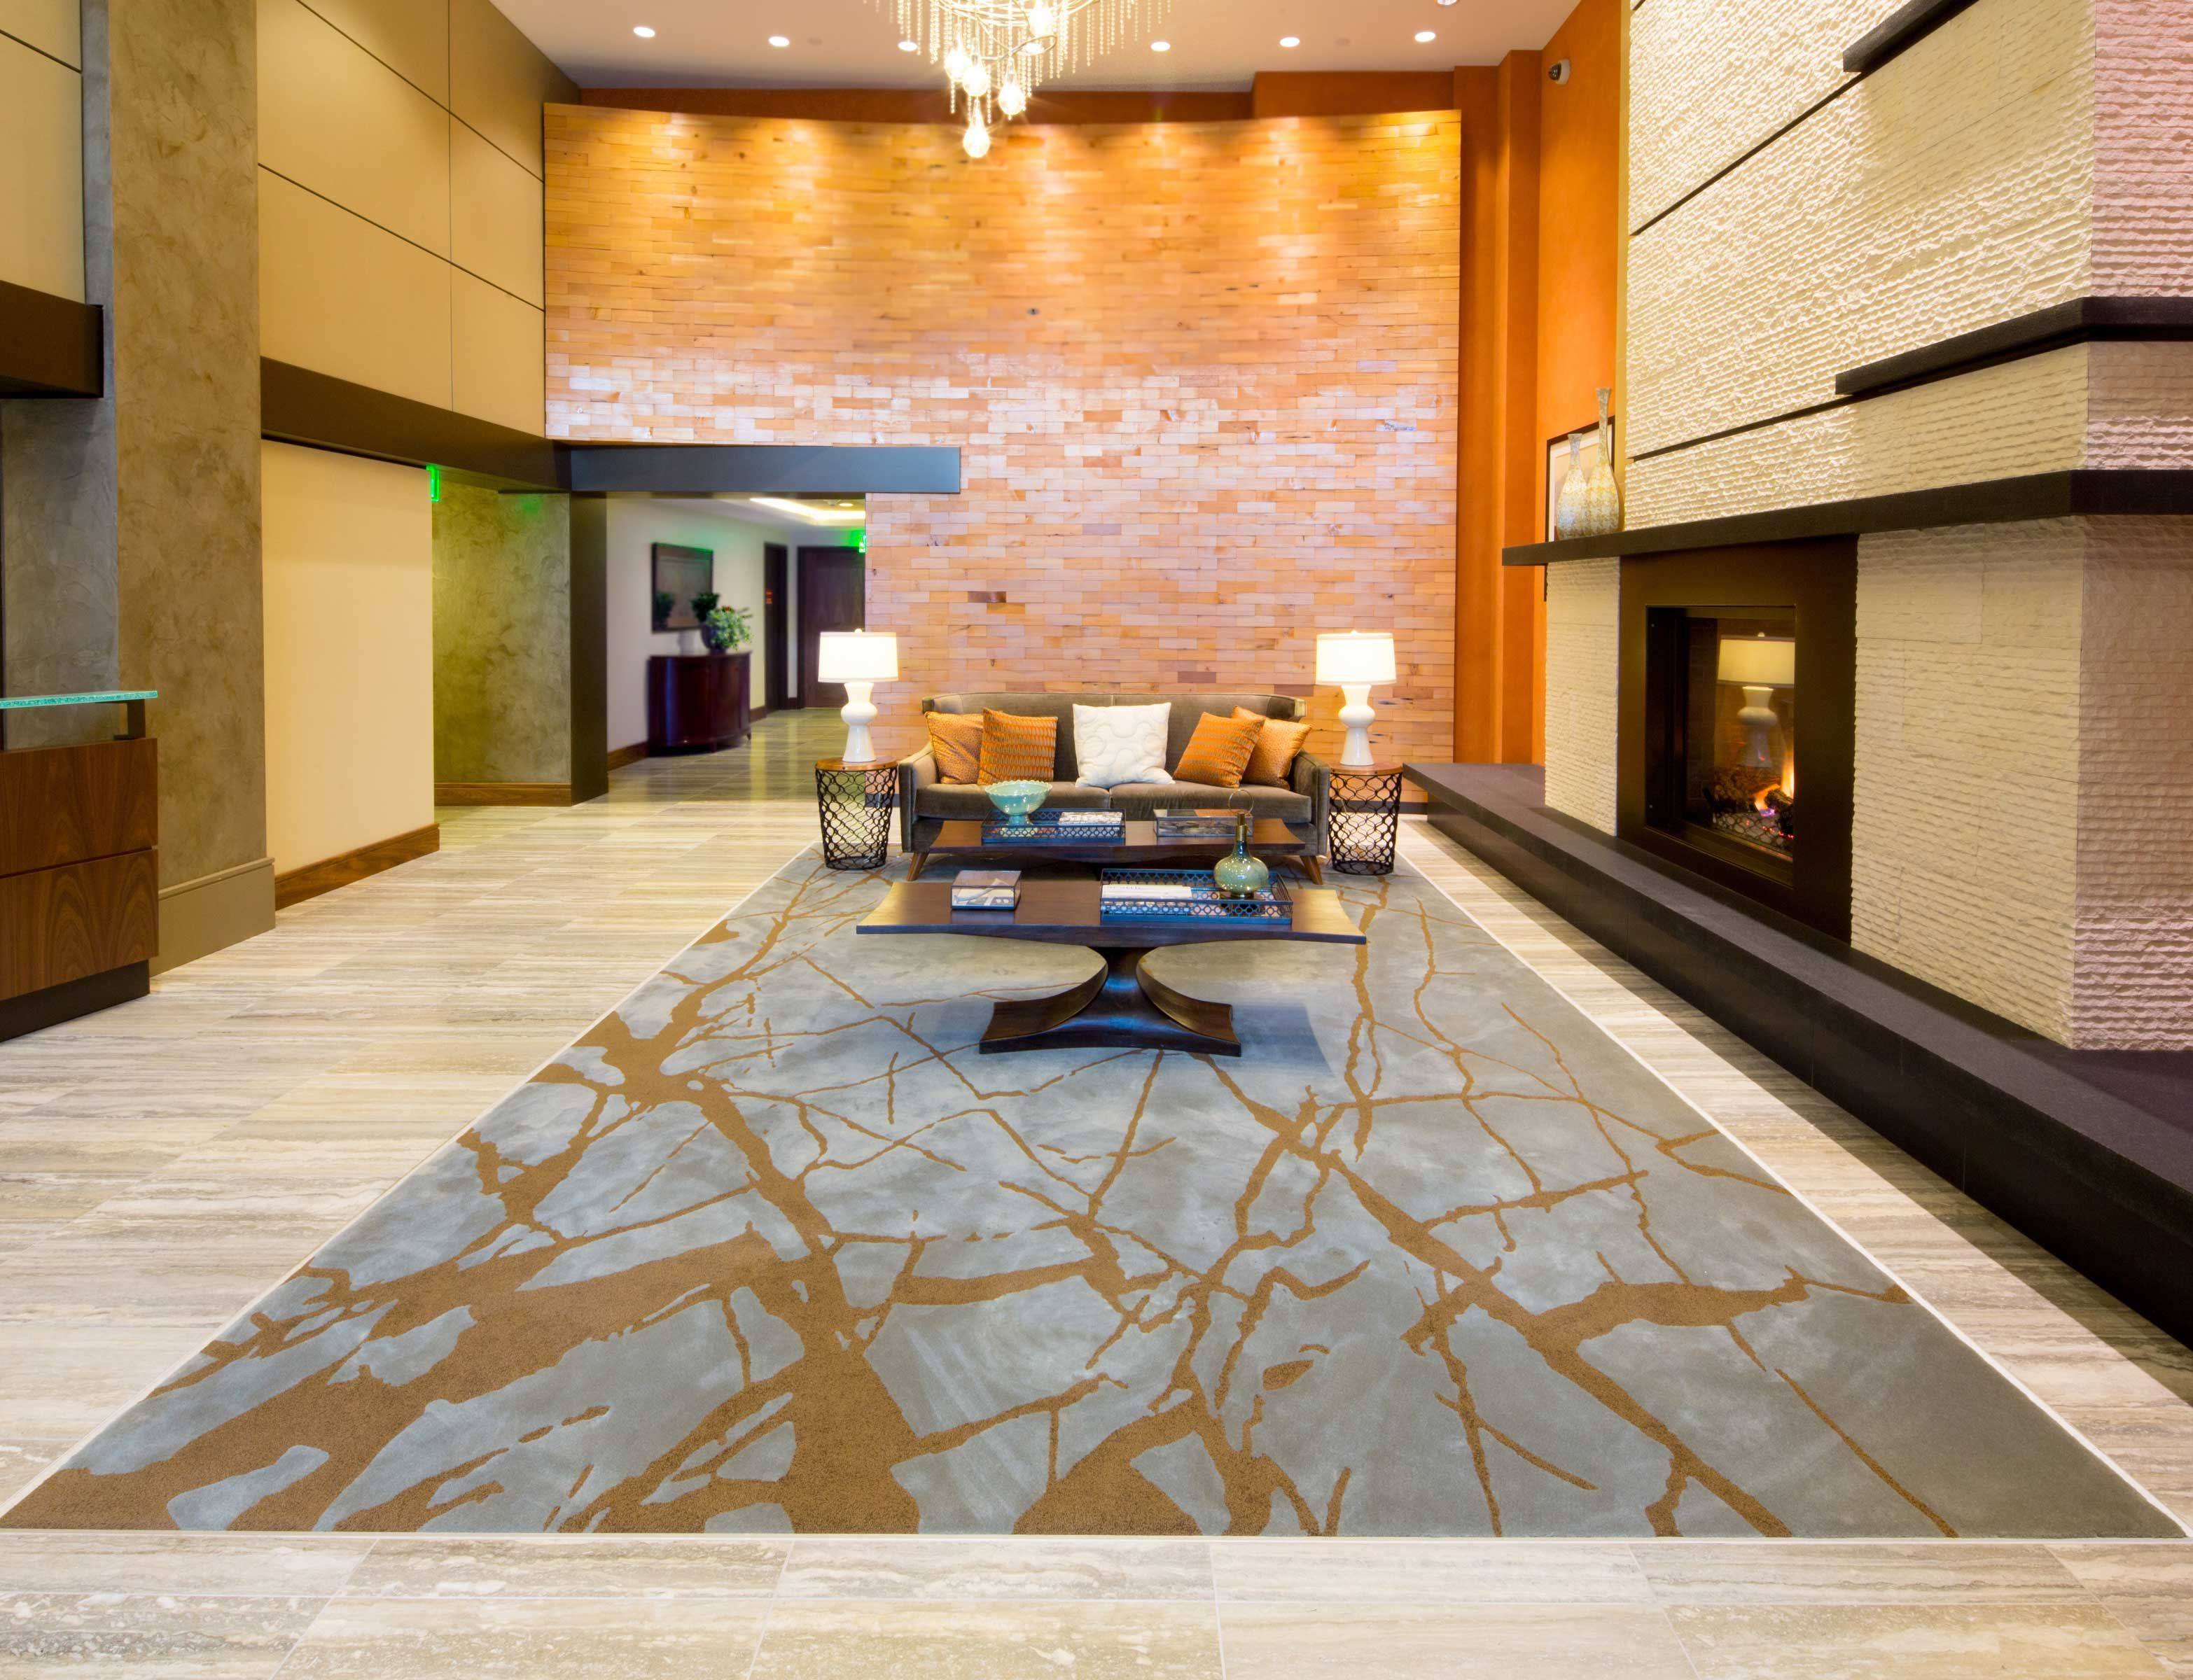 Custom Rug From Masland Contract At Coppins Well In Seattle Wa